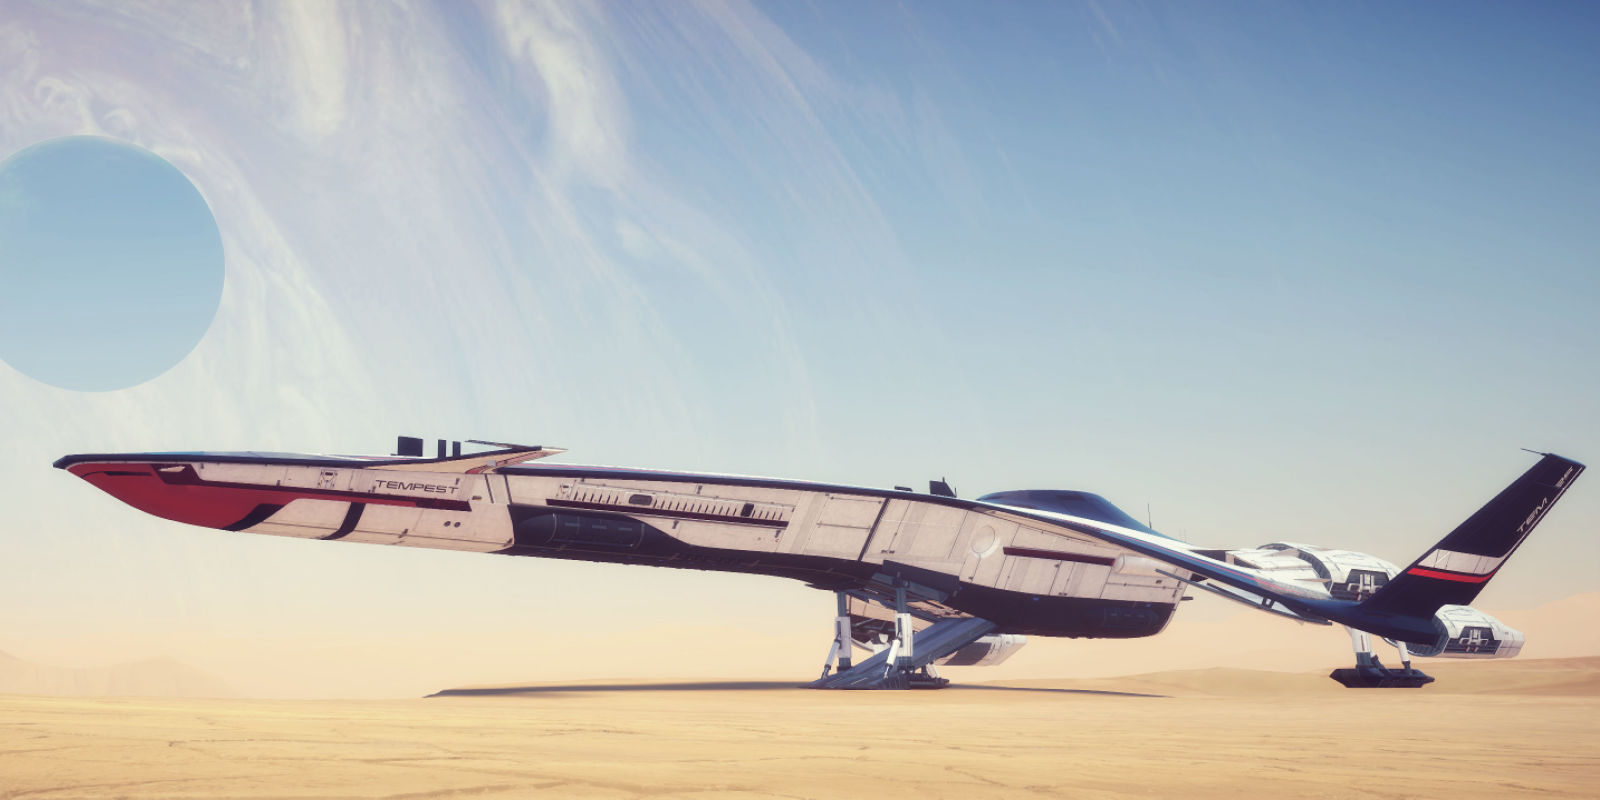 Mass effect model ships pictures to pin on pinterest for 11547 sunshine terrace